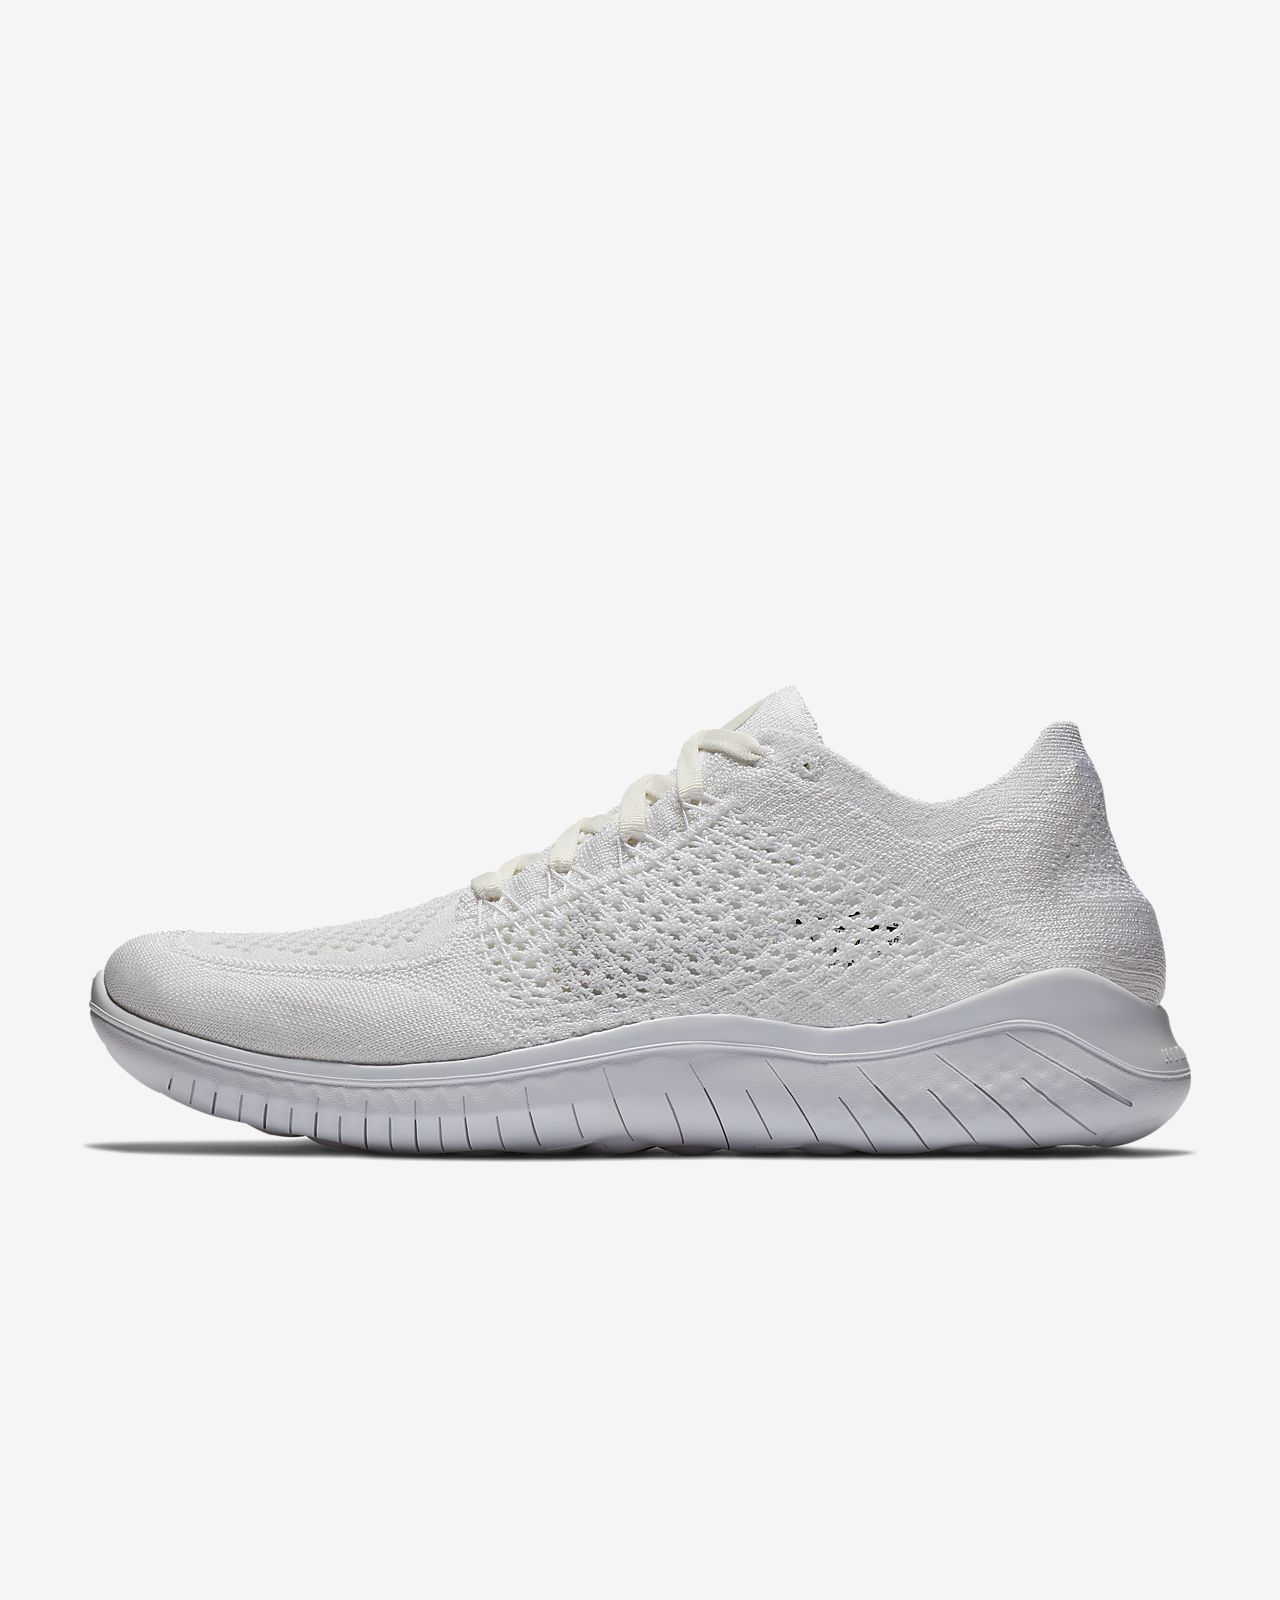 the best attitude 1d69d 6a635 ... Nike Free RN Flyknit 2018 Mens Running Shoe